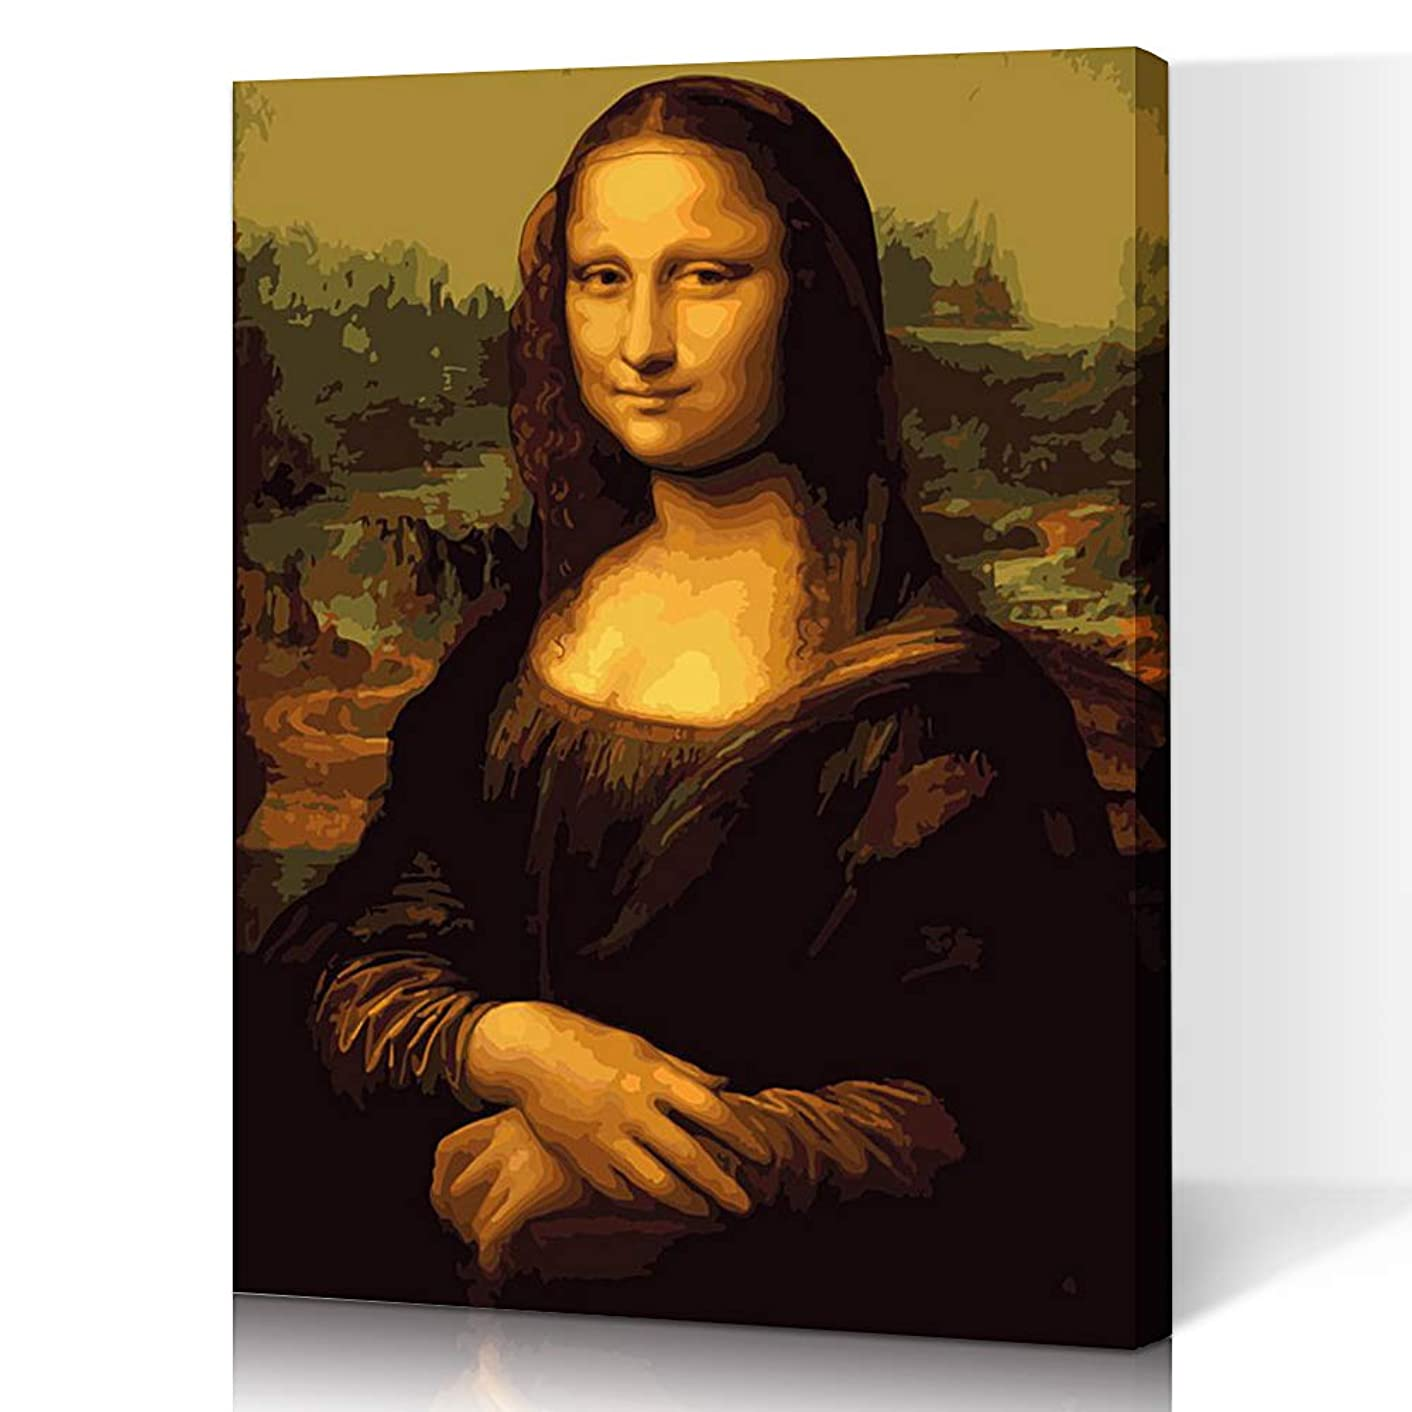 LIUDAO Mona Lisa Oil Painting on Canvas Paint by Number Kit - Include 3 Brushes and Acrylic Paint Wooden Frame Ready to Hang (16x20 inch)